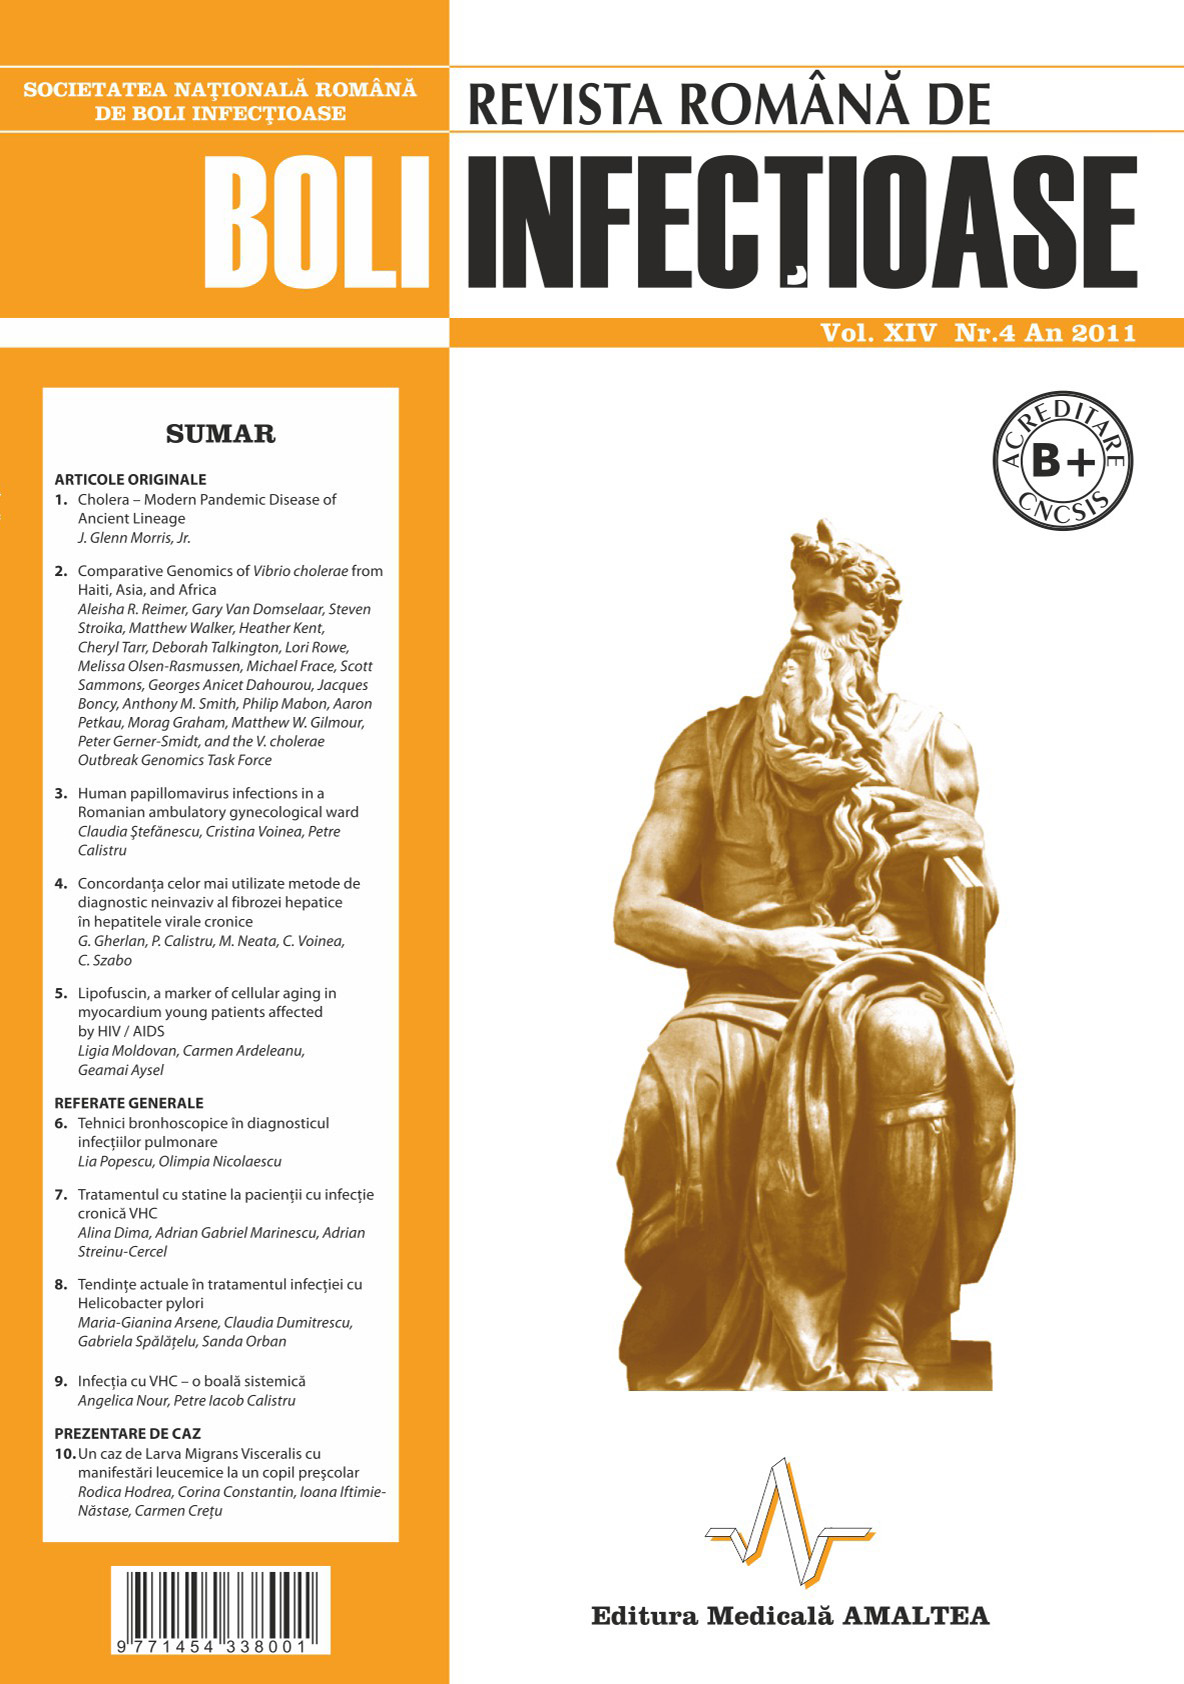 Revista Romana de Boli Infectioase | Vol. XIV, No. 4, 2011